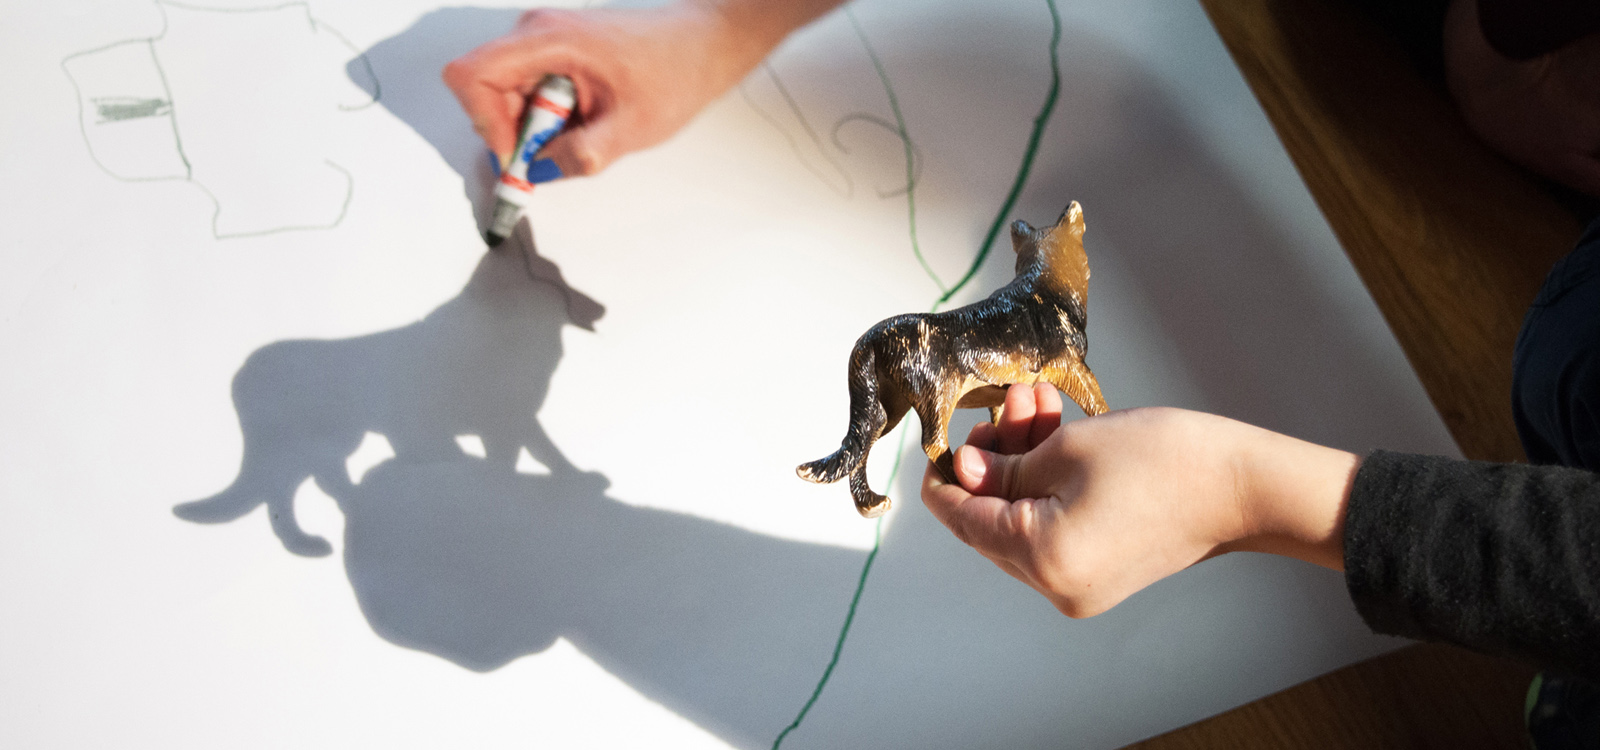 Tracing the shadow cast by a toy figure of a dog.